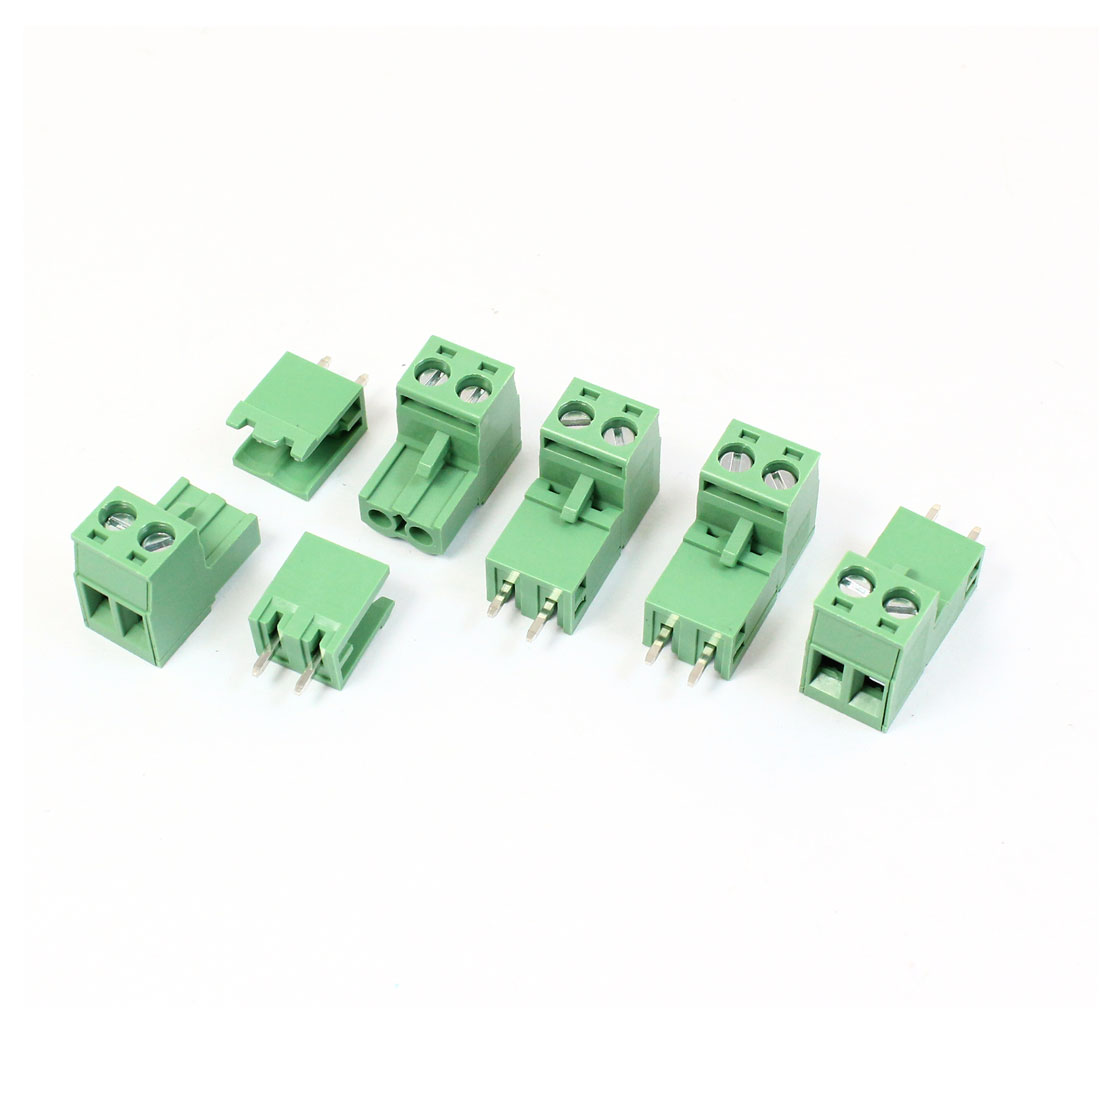 5 Pcs Green KF2EDG 3.81mm 2Position Right Angle 2Pin Pluggable Screw Terminal Block Connector 300V 10A